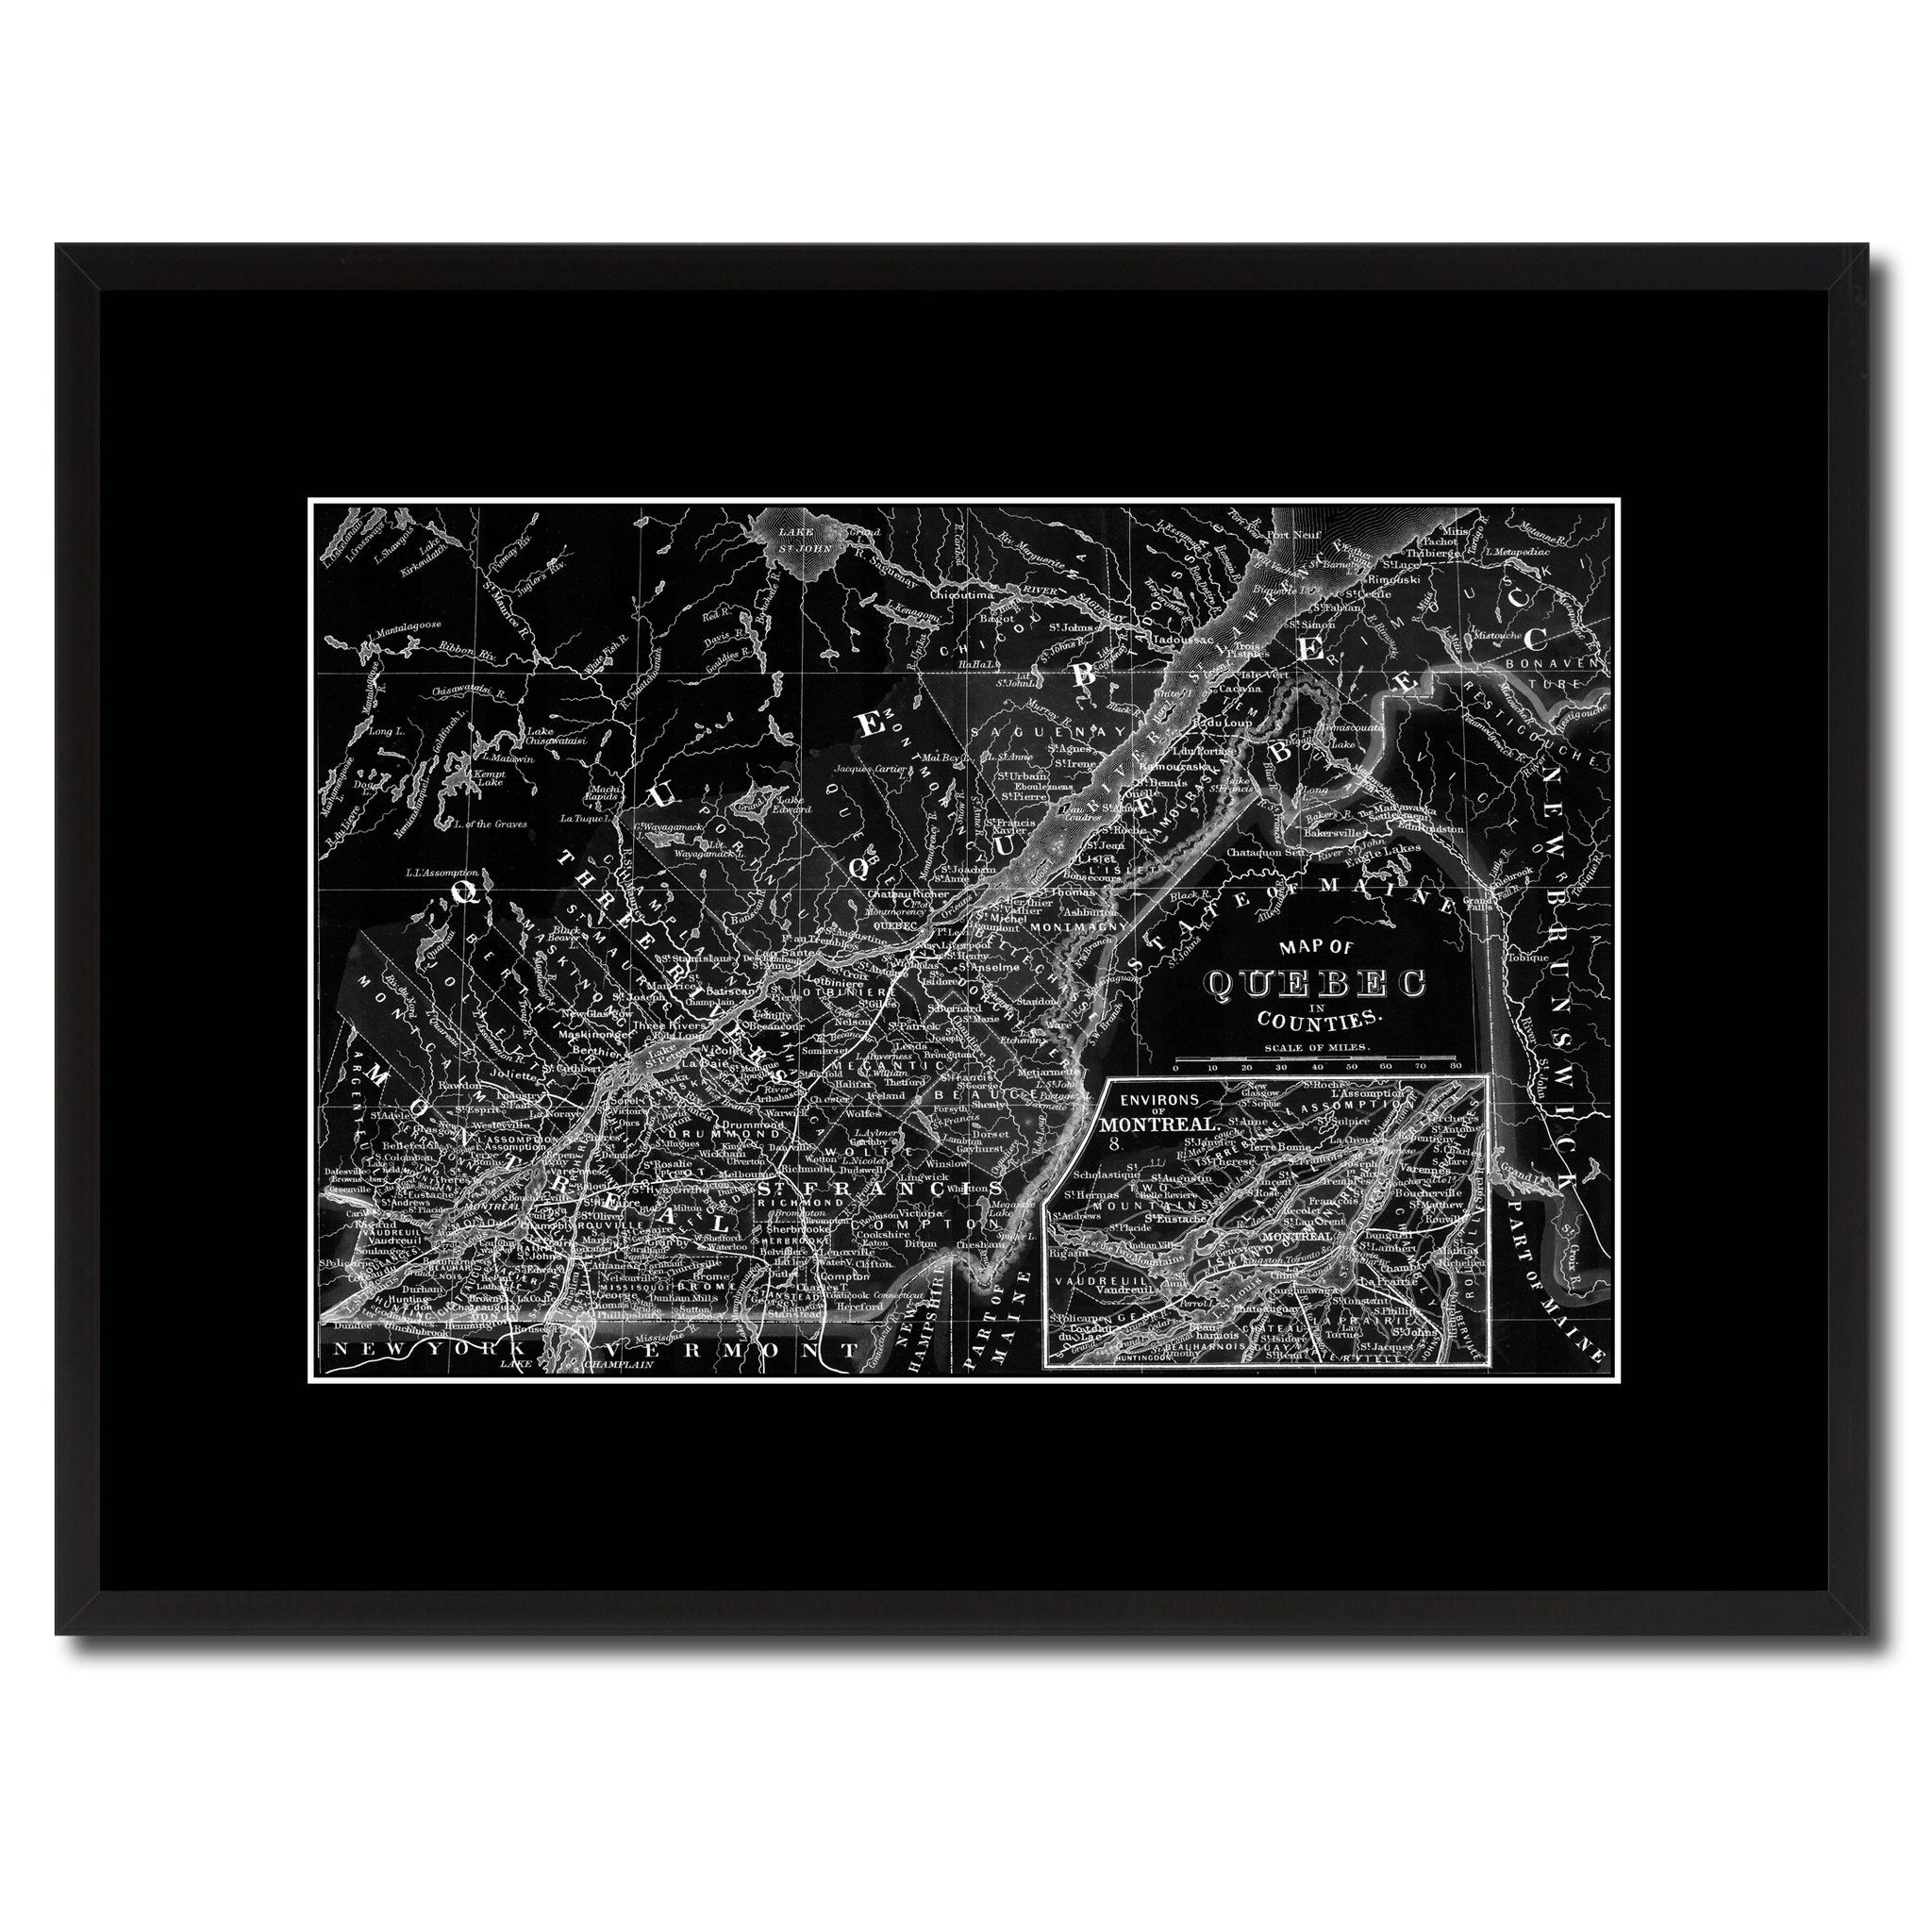 Quebec Montreal Vintage Monochrome Map Canvas Print Gifts Picture Frames Home Decor Wall Art